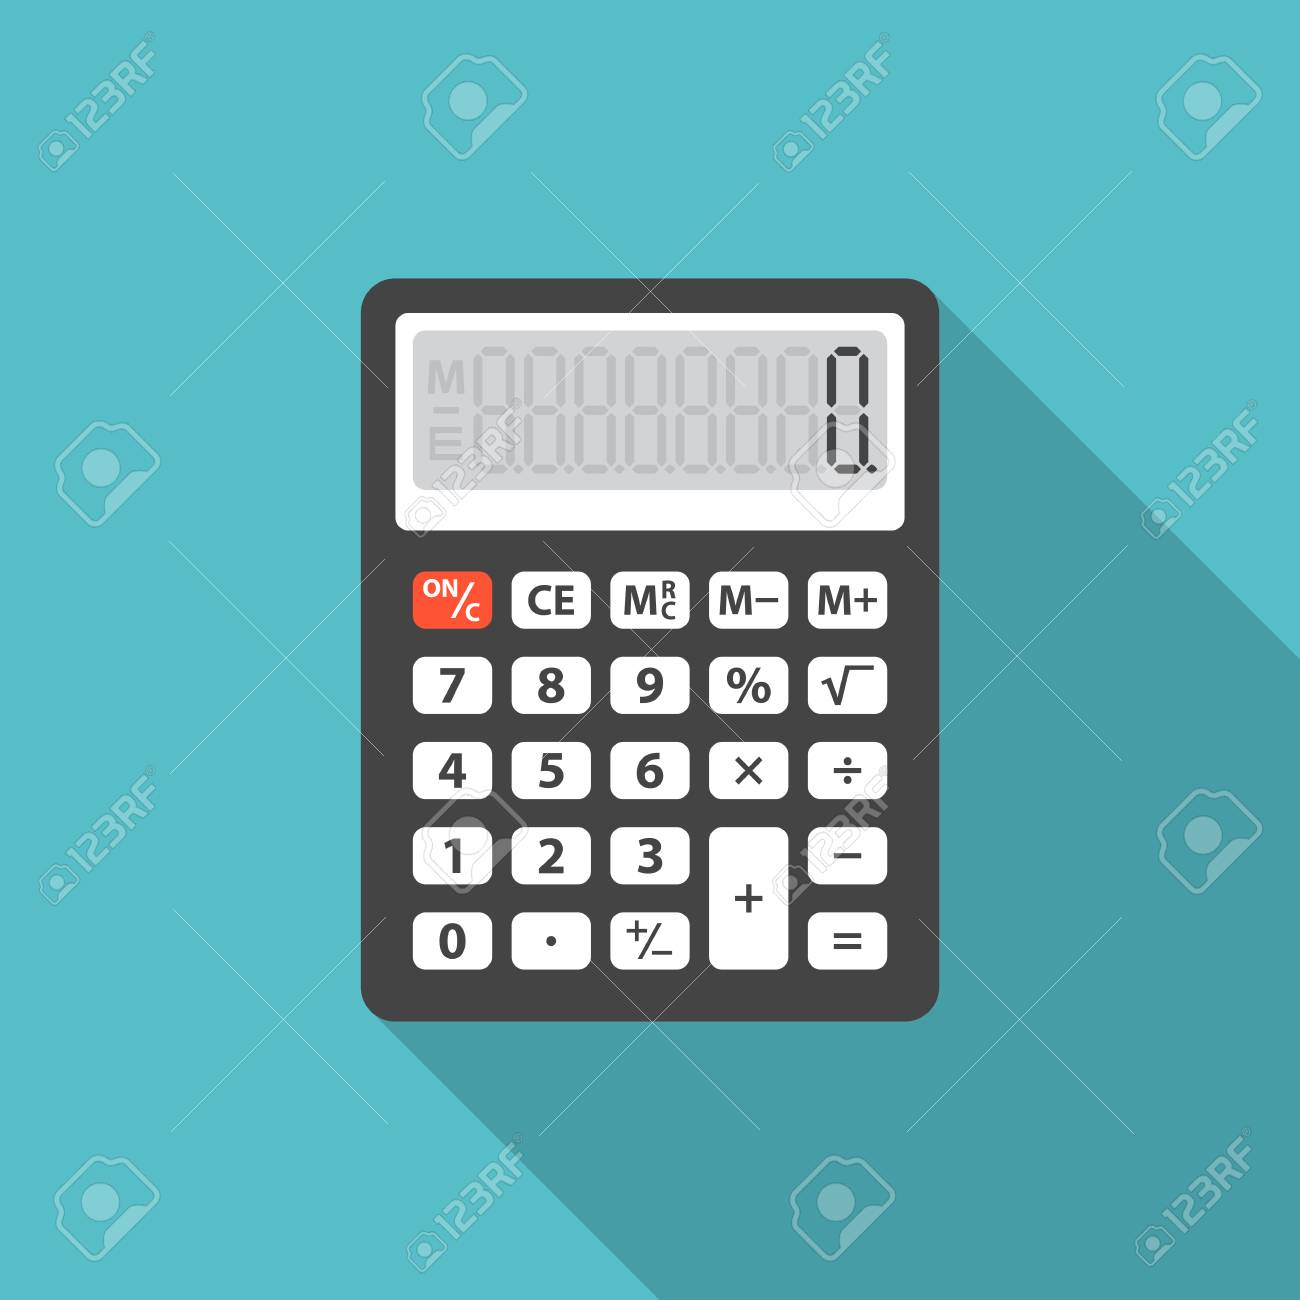 Calculator icon with long shadow. Flat design style. Calculator simple silhouette. Modern, minimalist icon in stylish colors. Web site page and mobile app design vector element. - 90313118